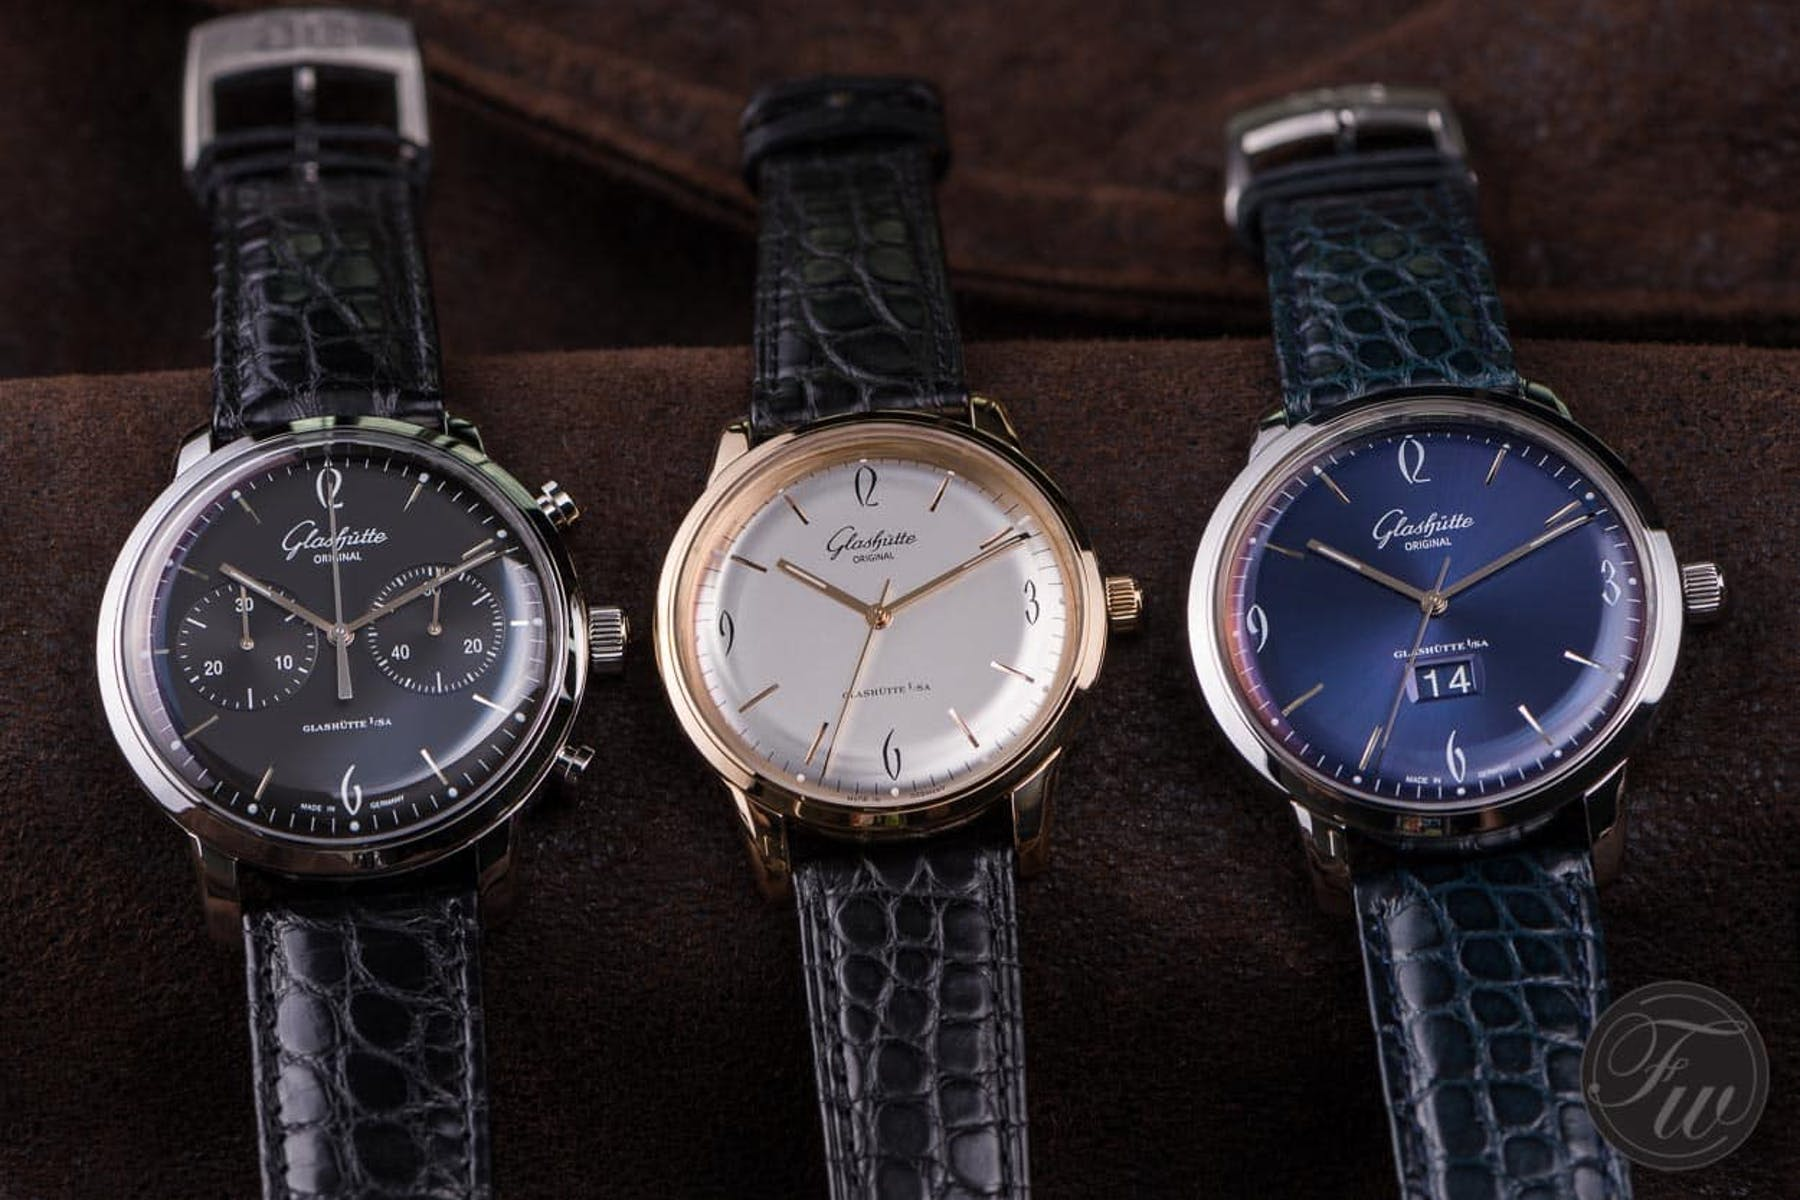 5 Distinct Glashutte Original Watch Collections That Magnify Elegance